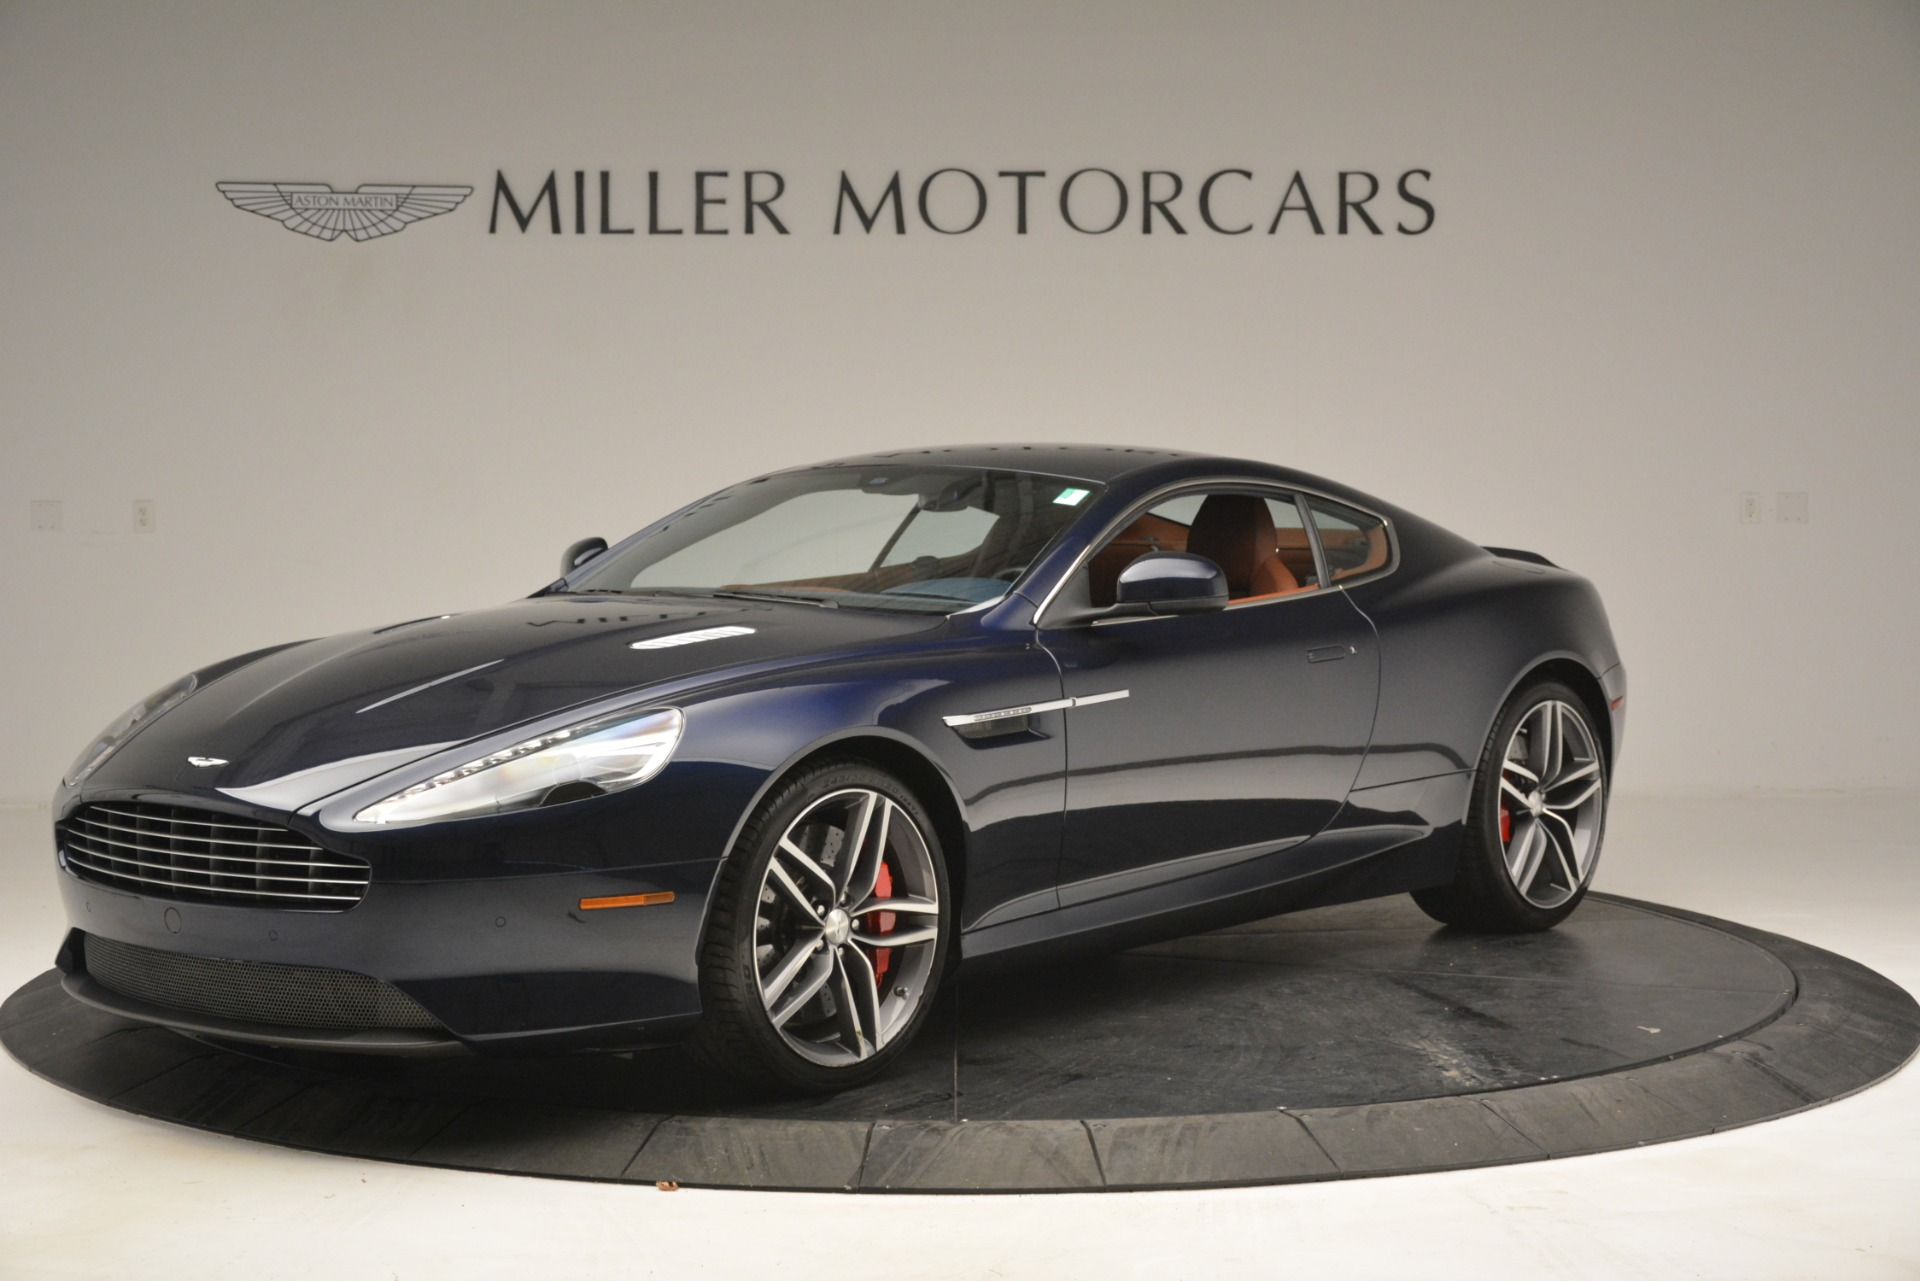 Used 2014 Aston Martin DB9 Coupe for sale Sold at Bentley Greenwich in Greenwich CT 06830 1